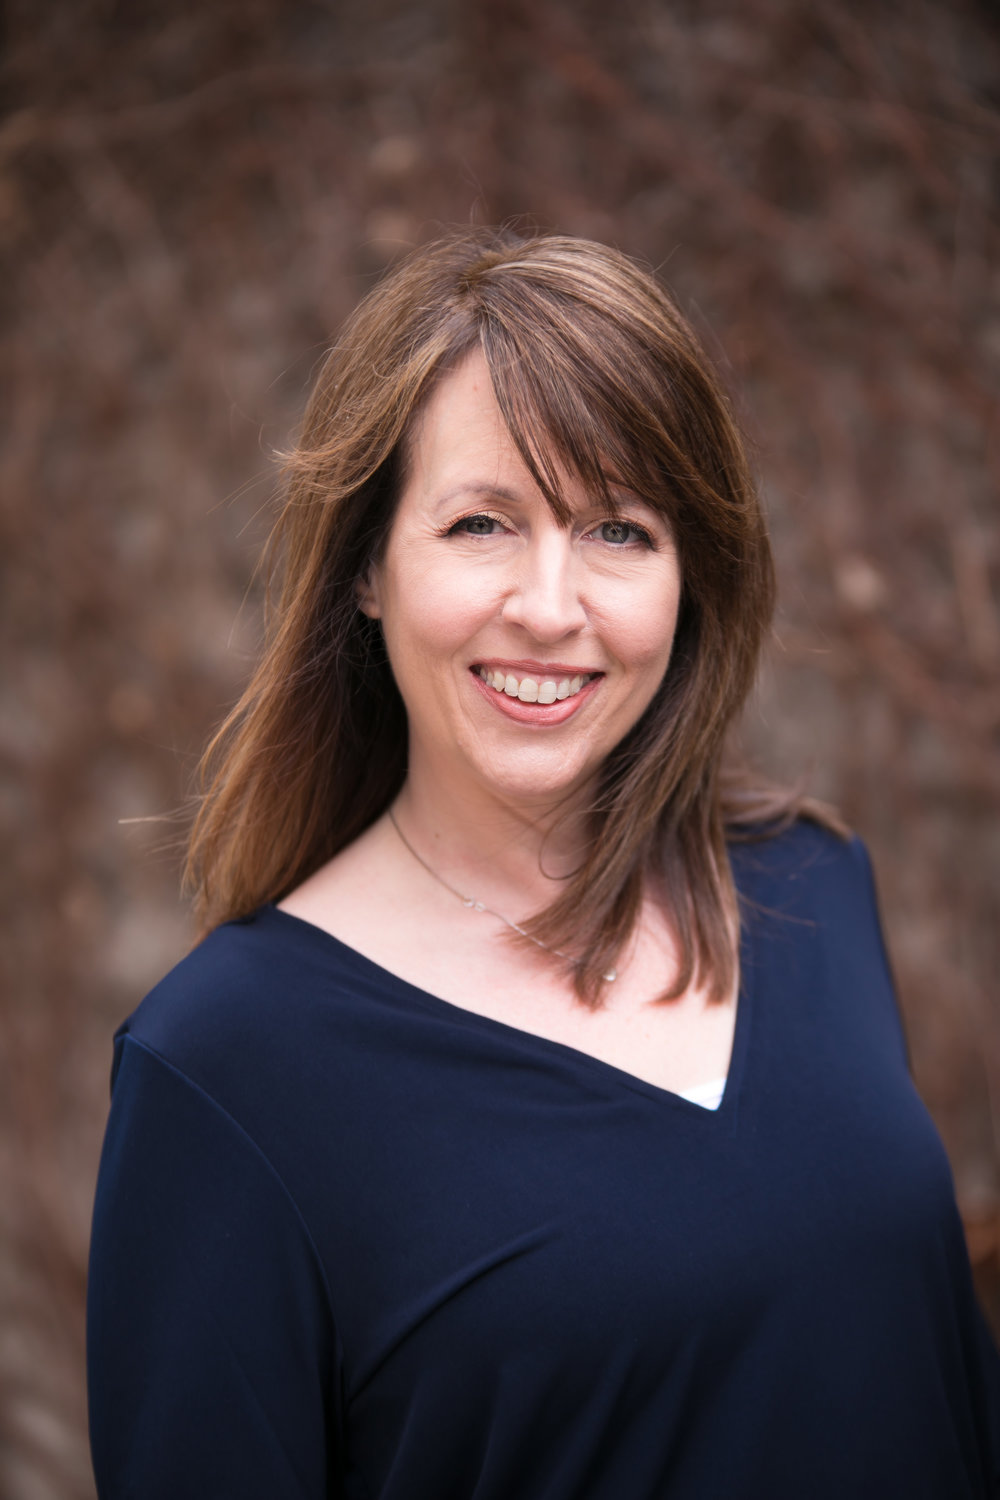 KAREN FOSTER - Associate Photographer/ Post-Production Manager